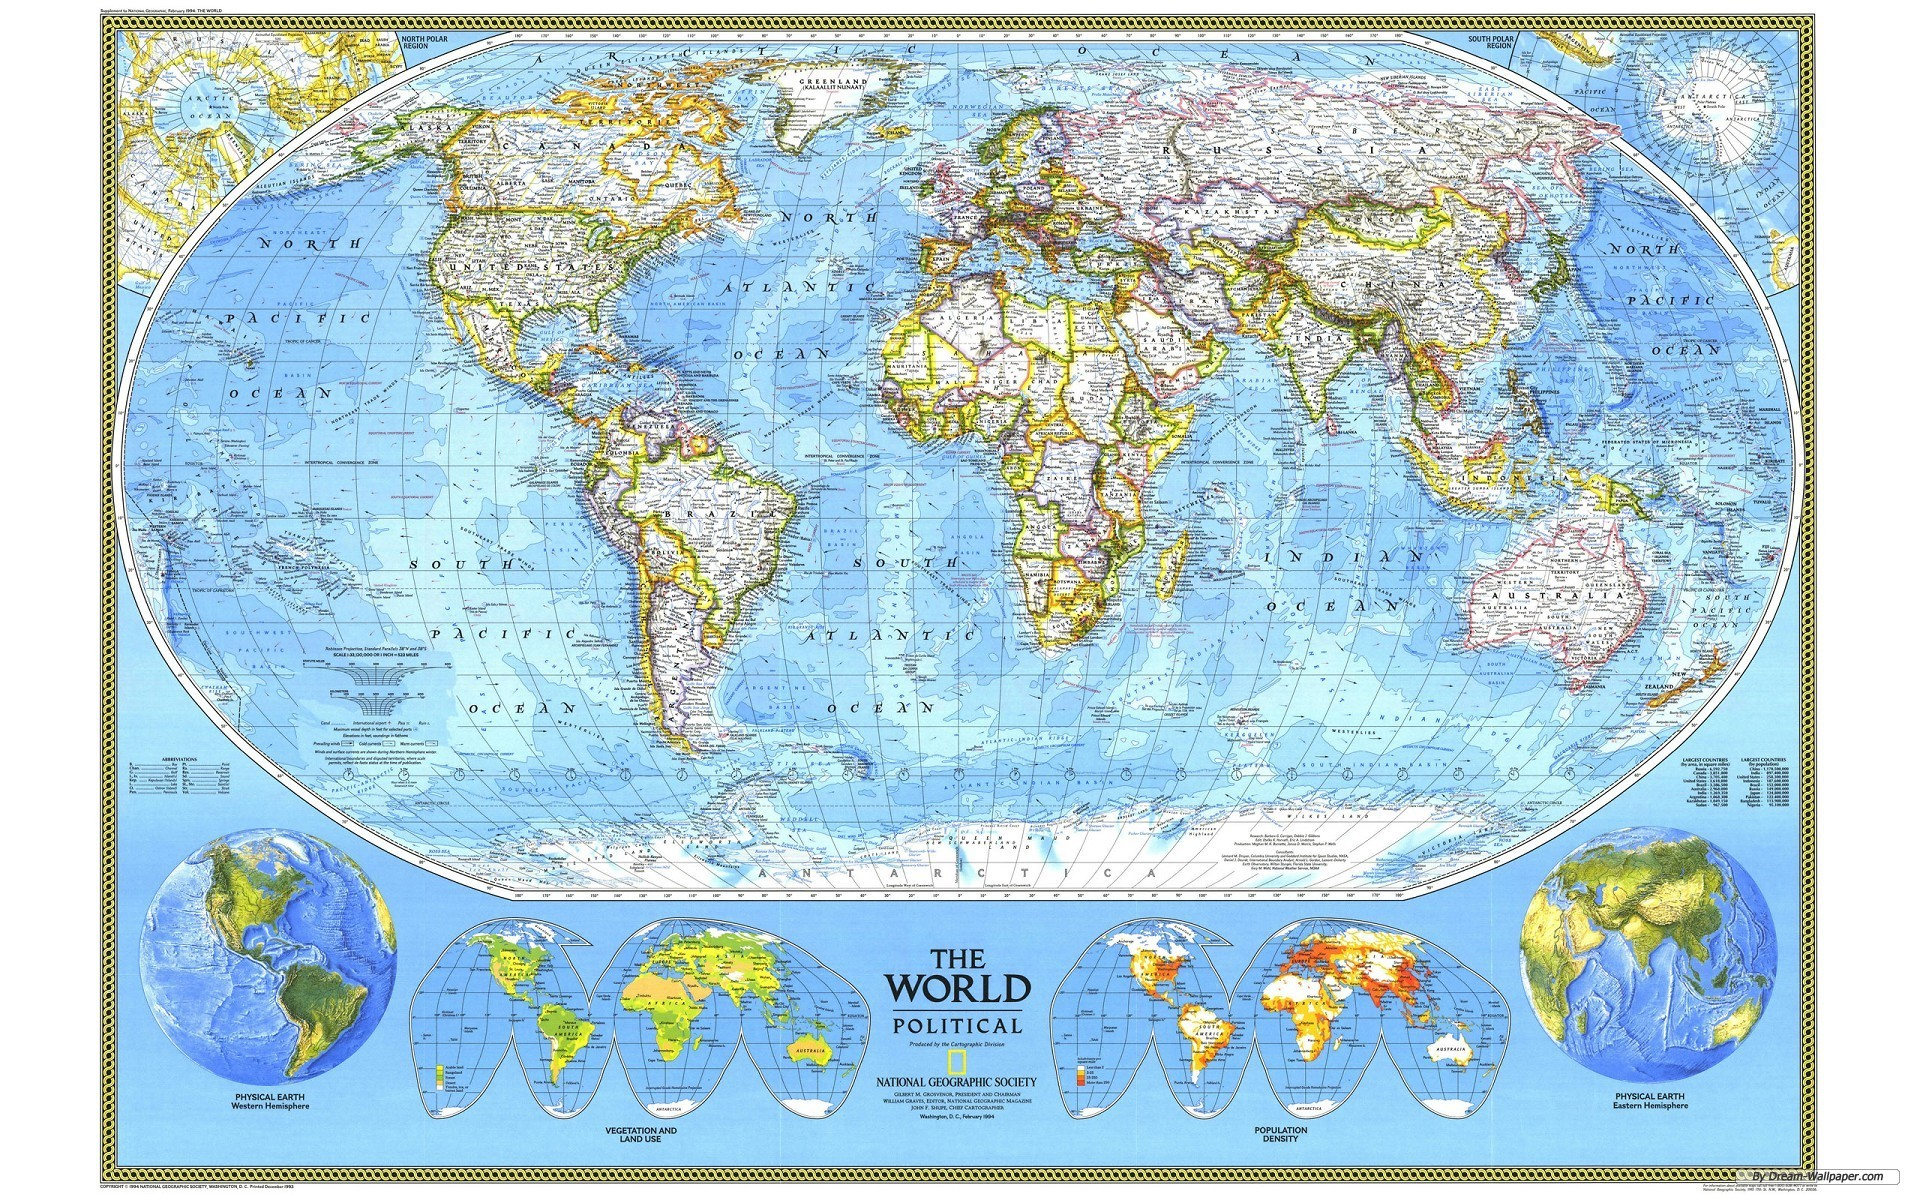 World map desktop wallpaper hd 70 images 1920x1080 blue world map 4k hd desktop wallpaper for ultra tv inside gumiabroncs Choice Image